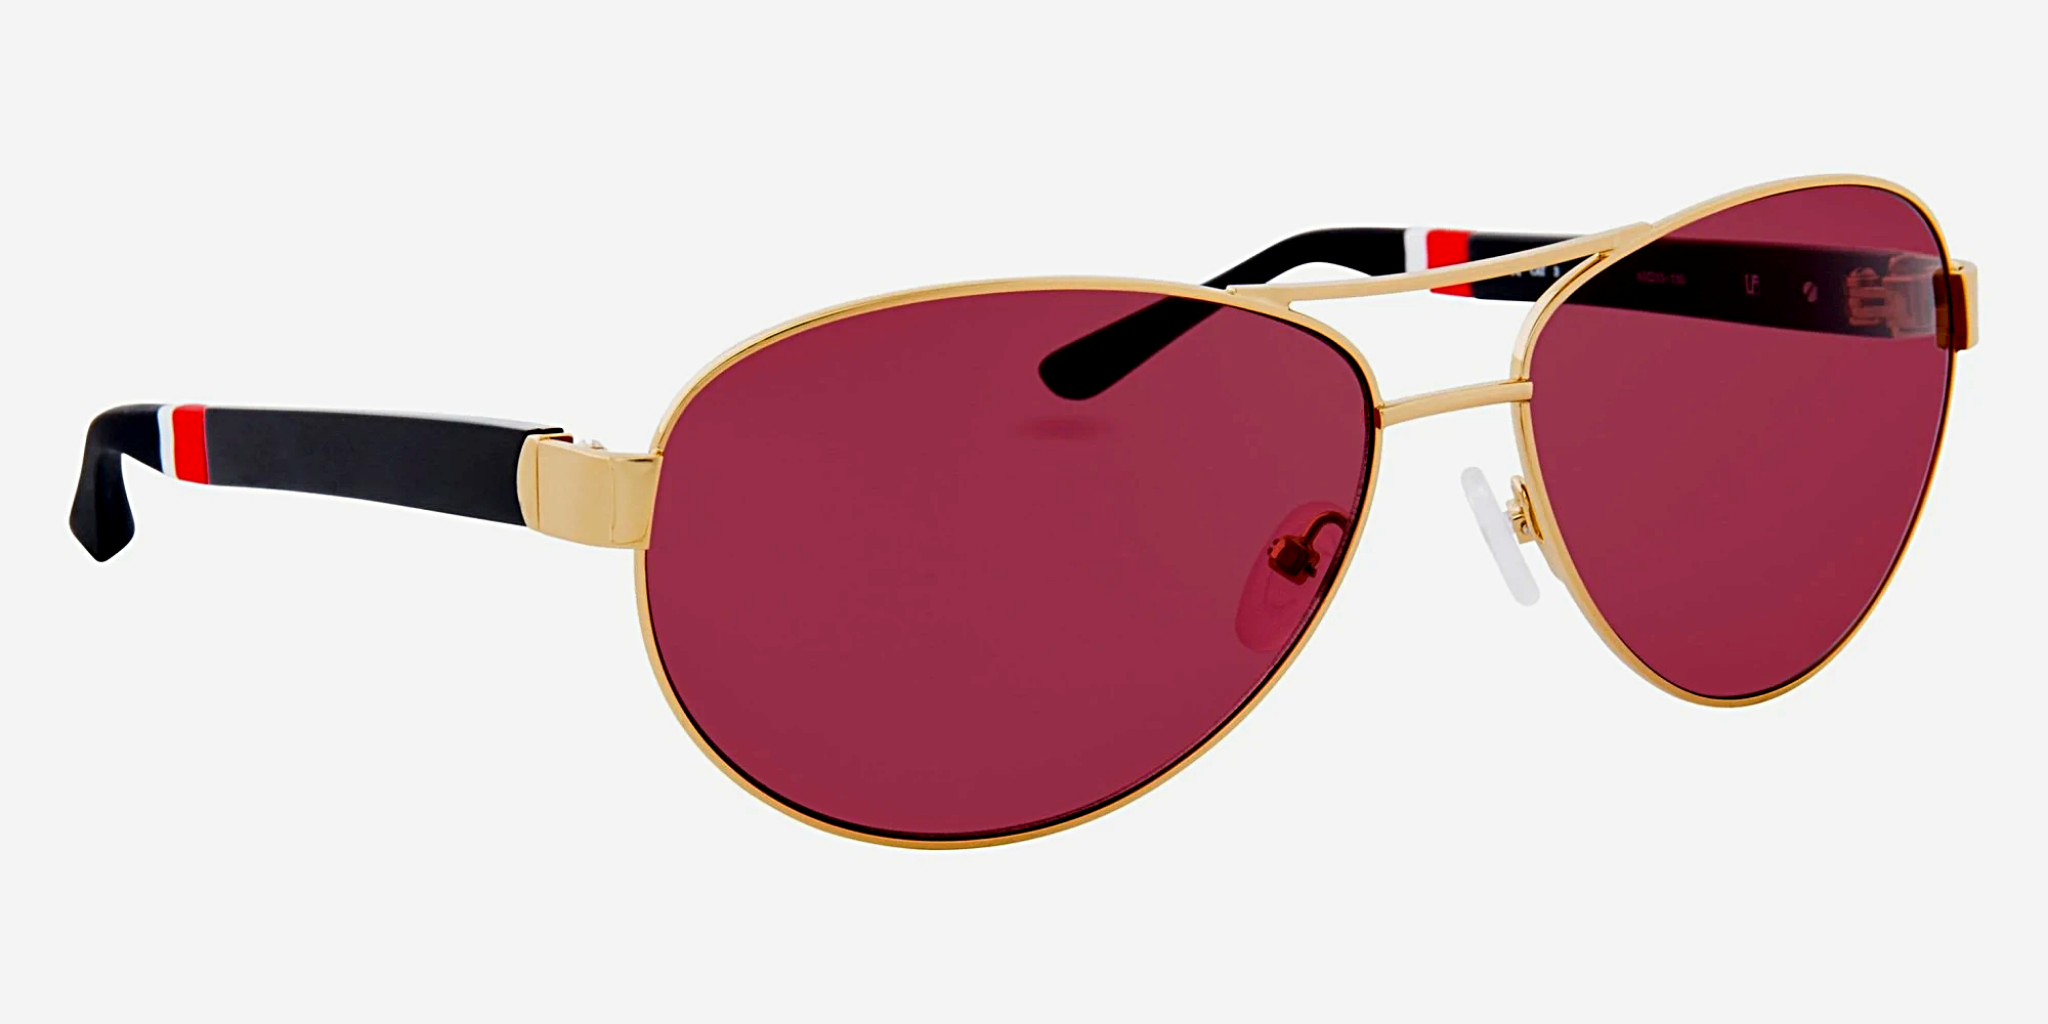 Orlebar Brown Sunglasses Yellow Gold and Purple